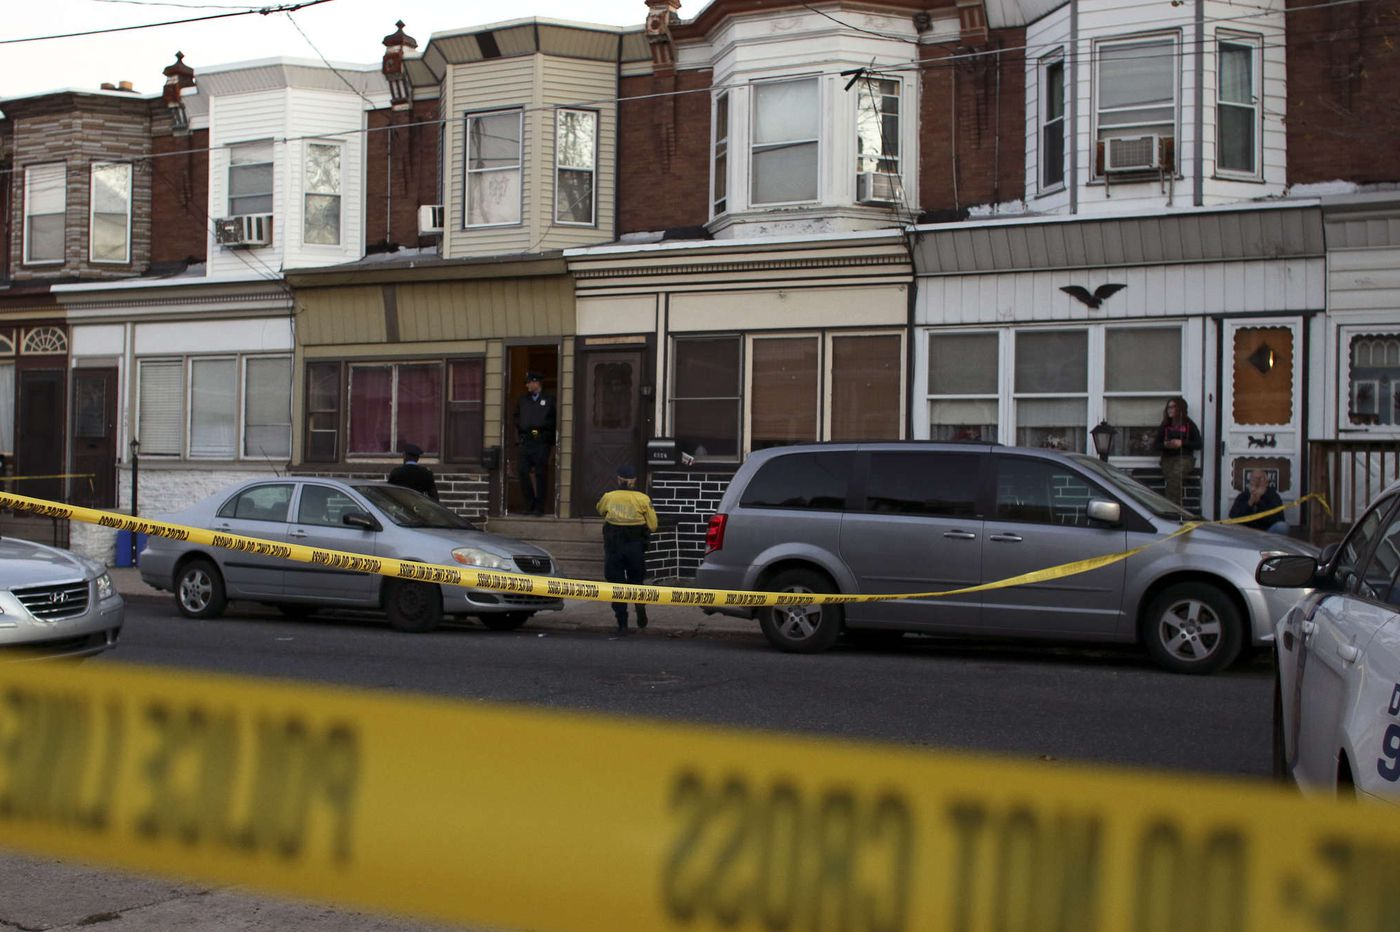 Police: 2 men found slain in a Harrowgate house's dining room